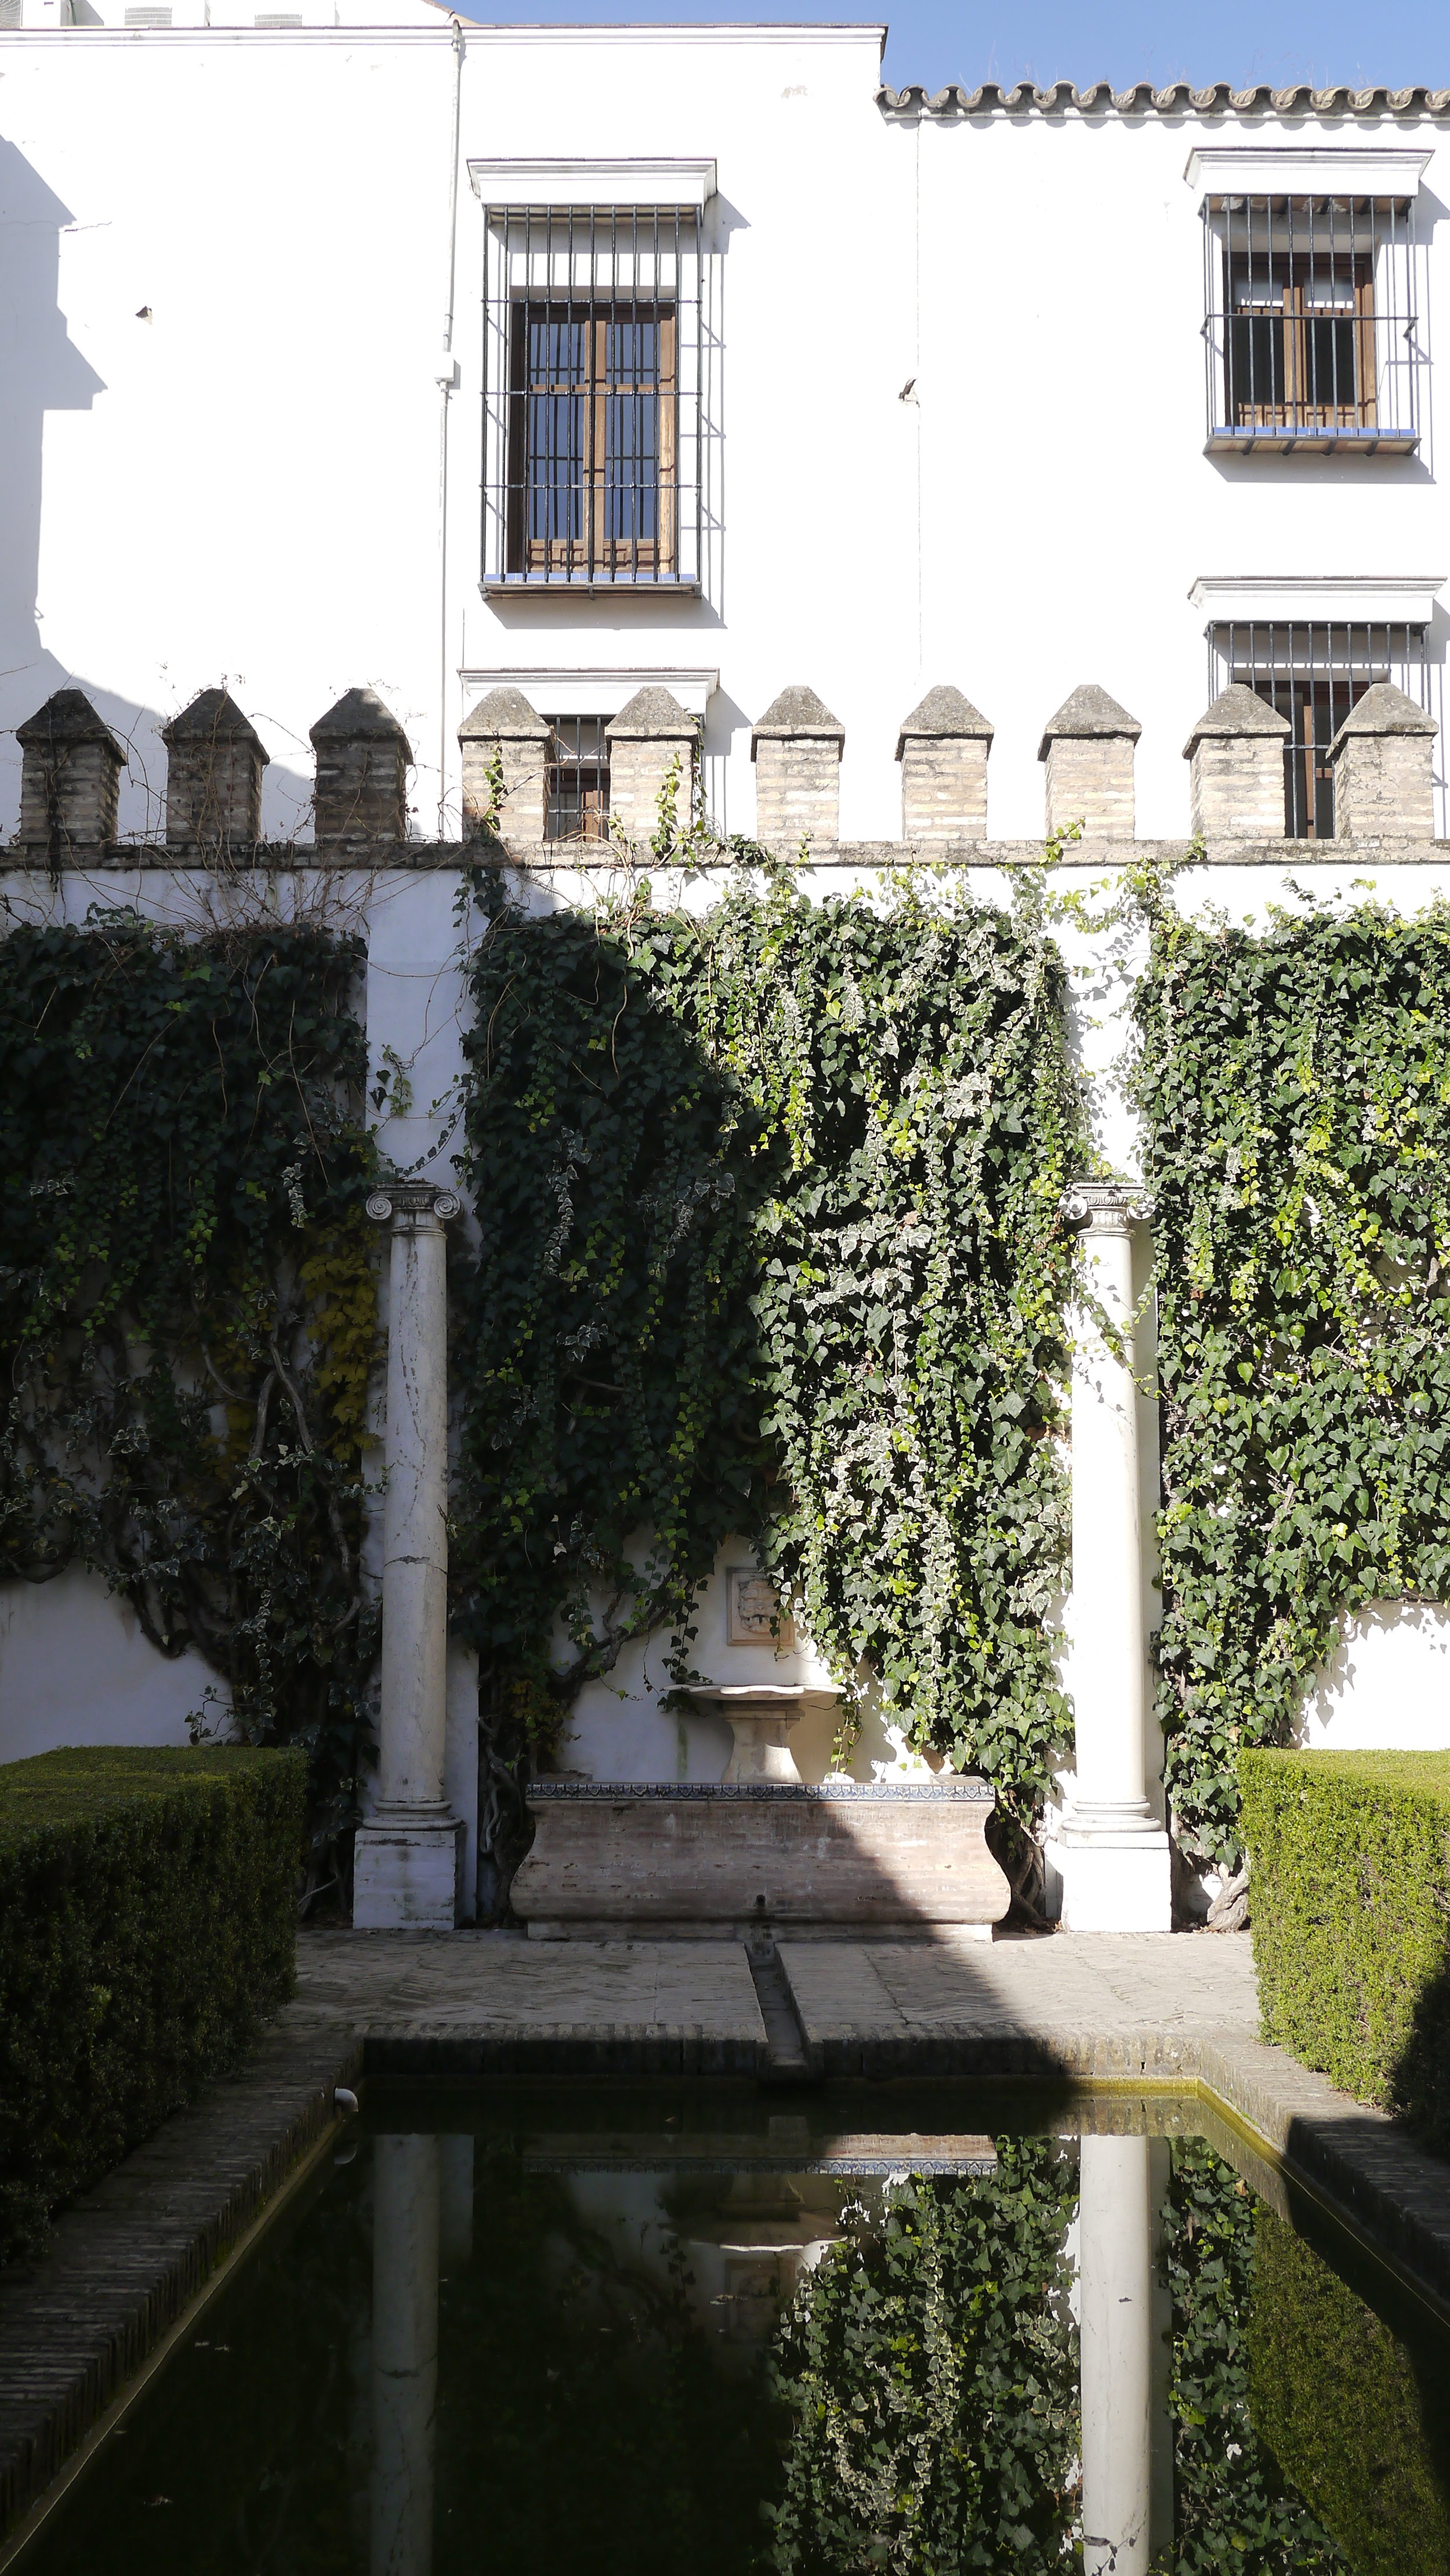 Reflections and linear design in a quiet courtyard of the Real Alcázar, Seville, Spain. December 2016.